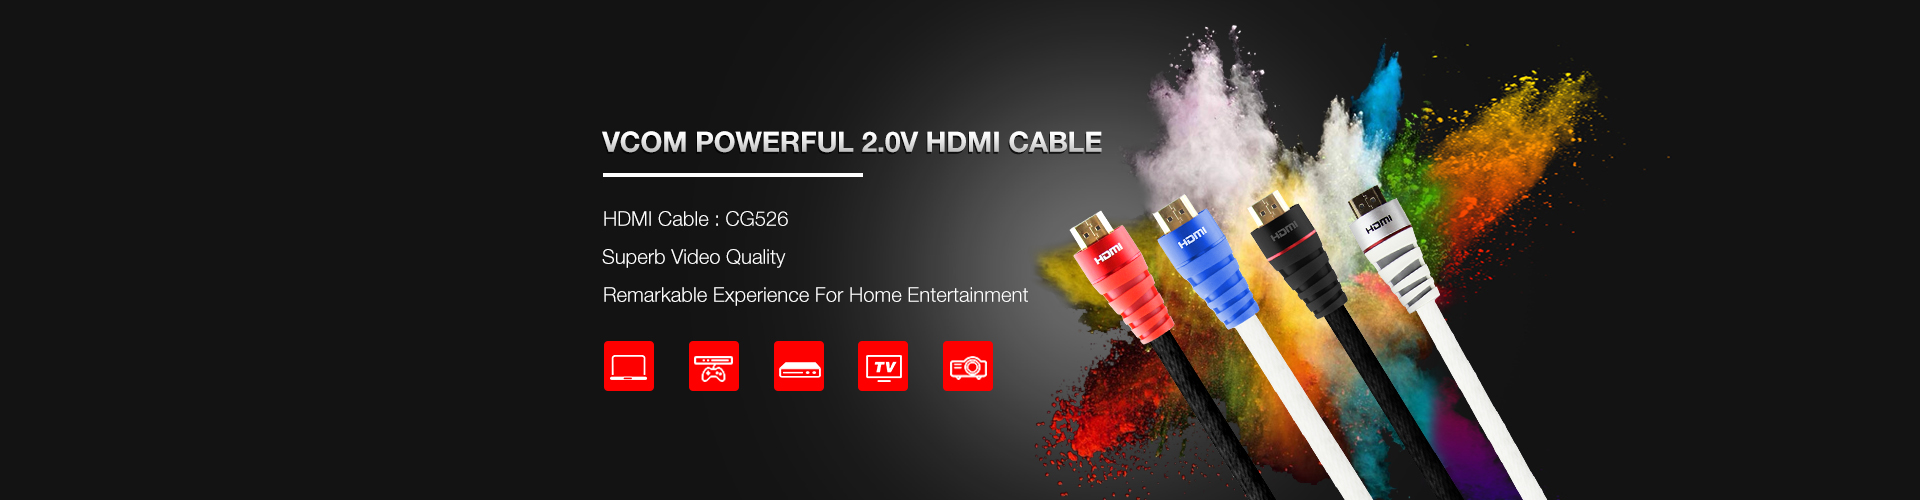 HDMI Cable- CG526